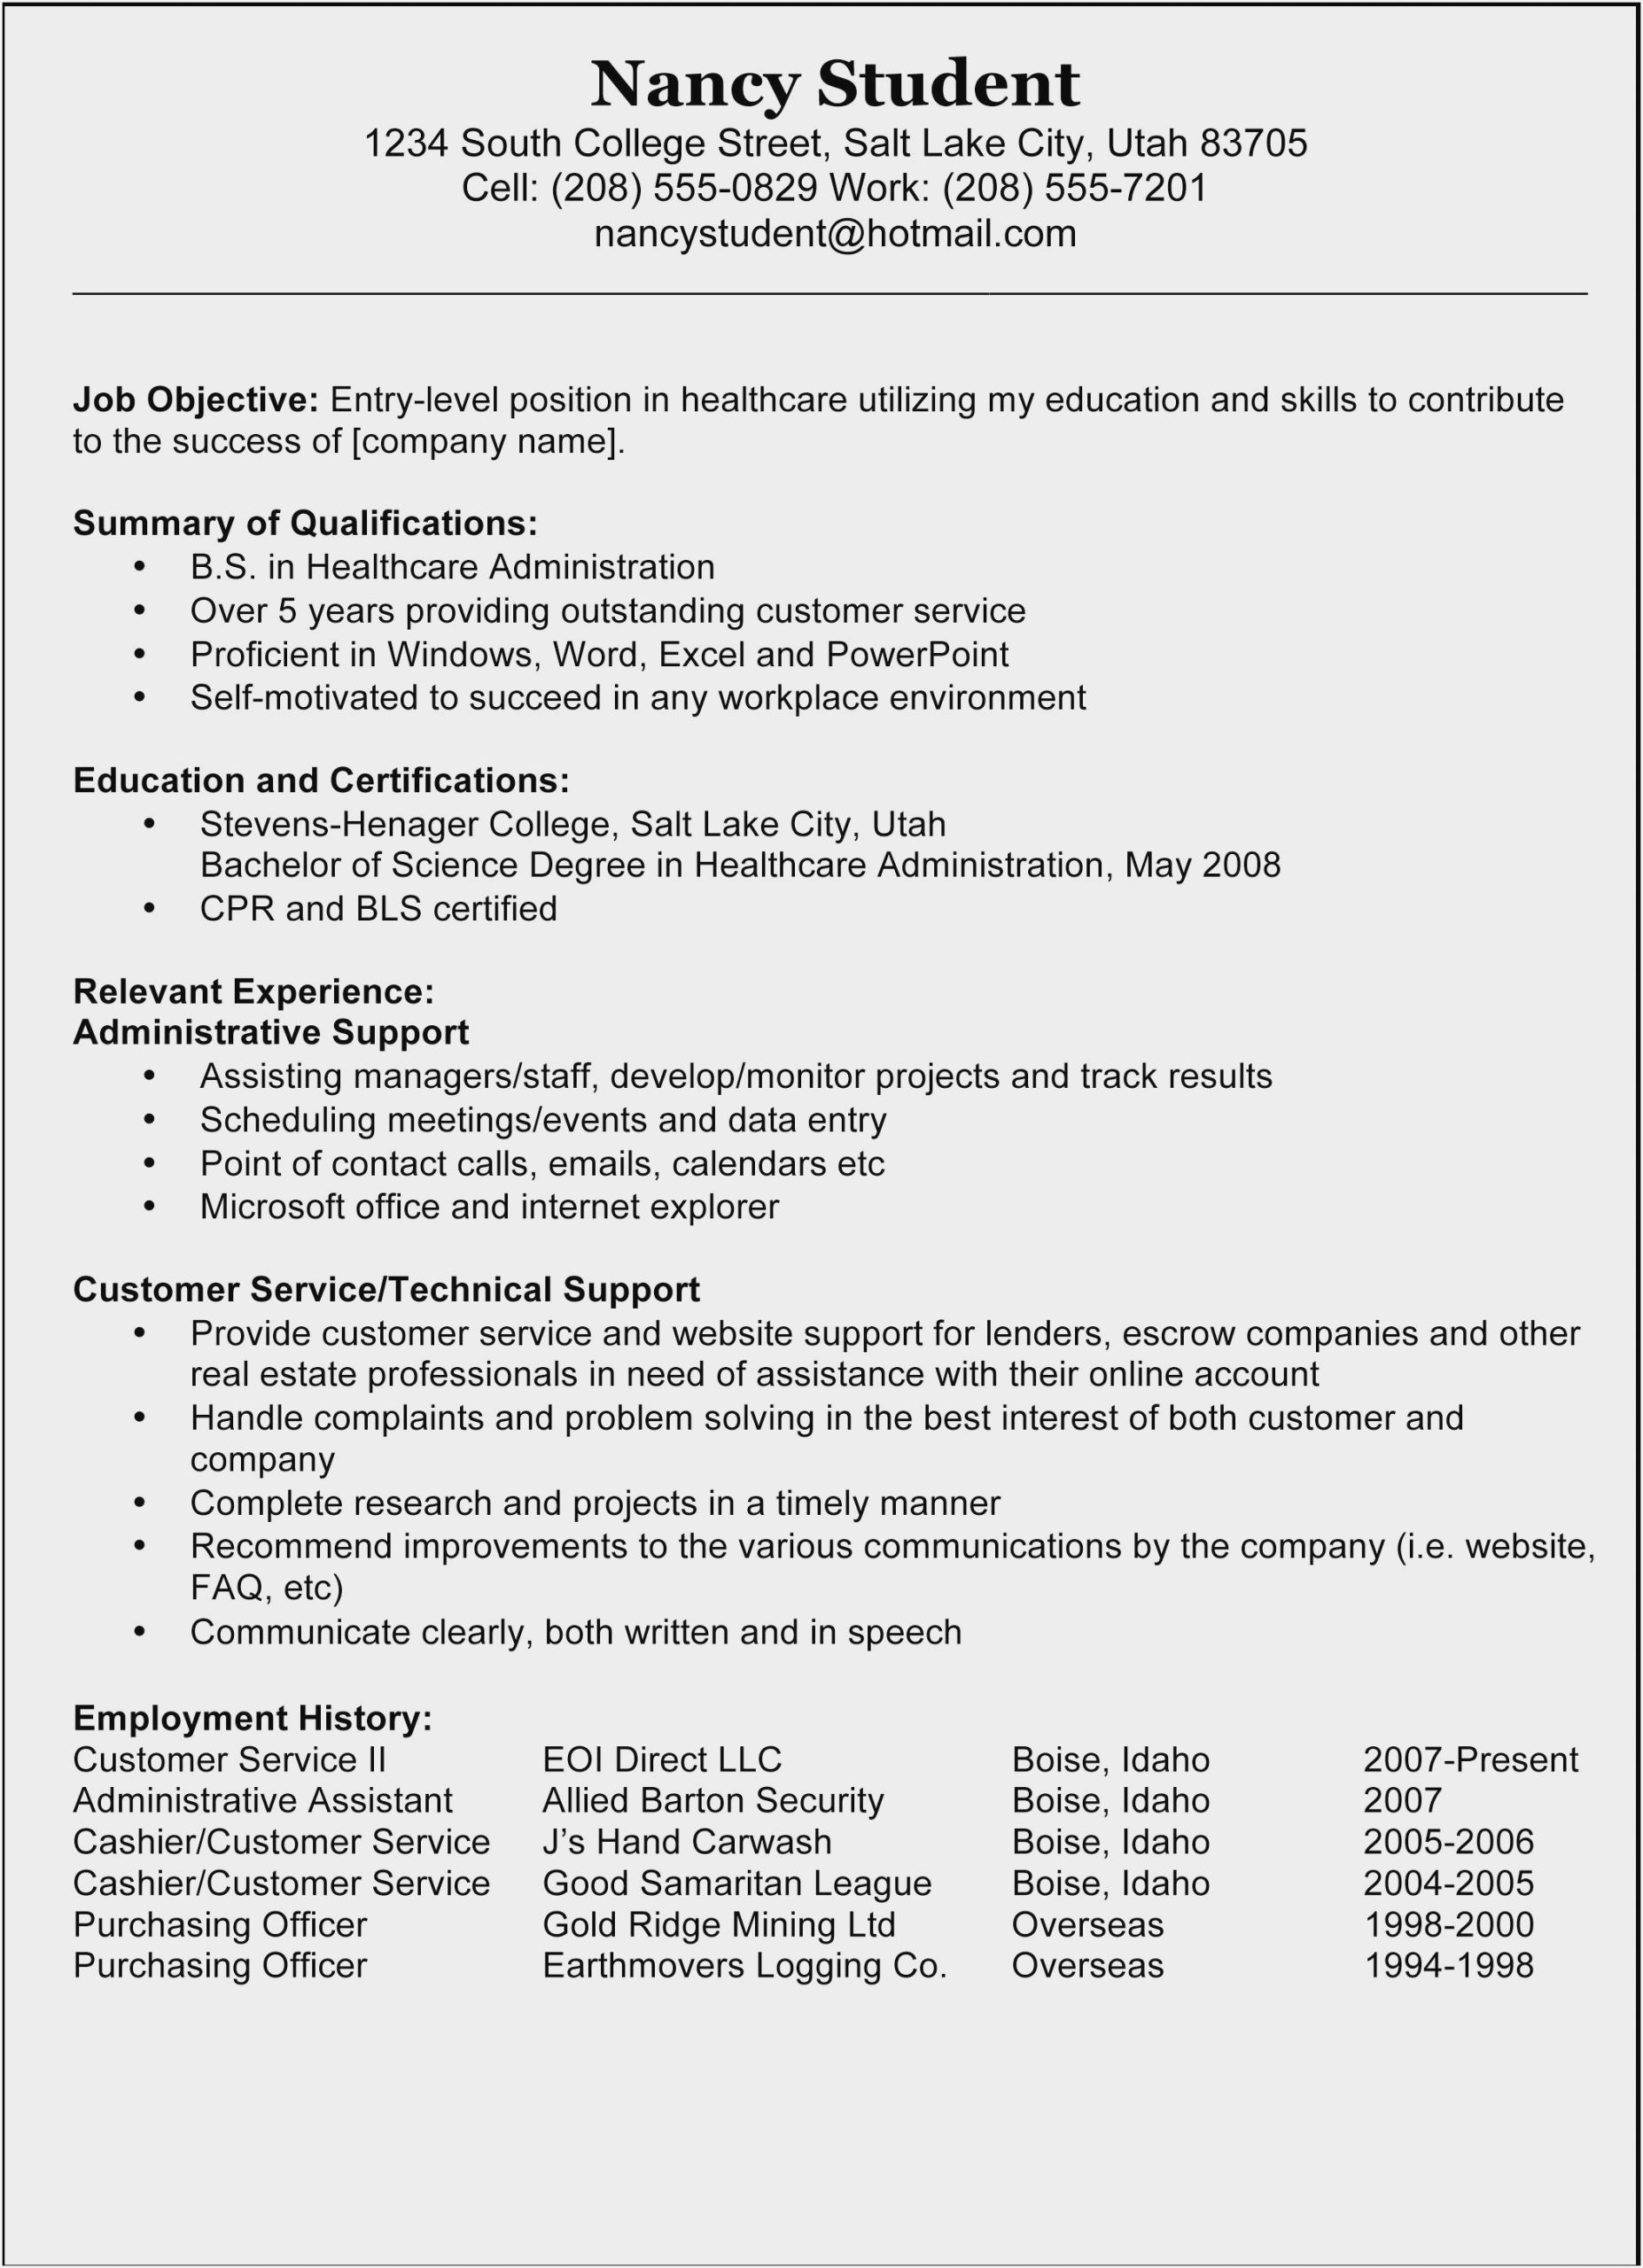 sample resume format for work abroad overseas employment scaled golf caddy latest updated Resume Resume For Overseas Employment